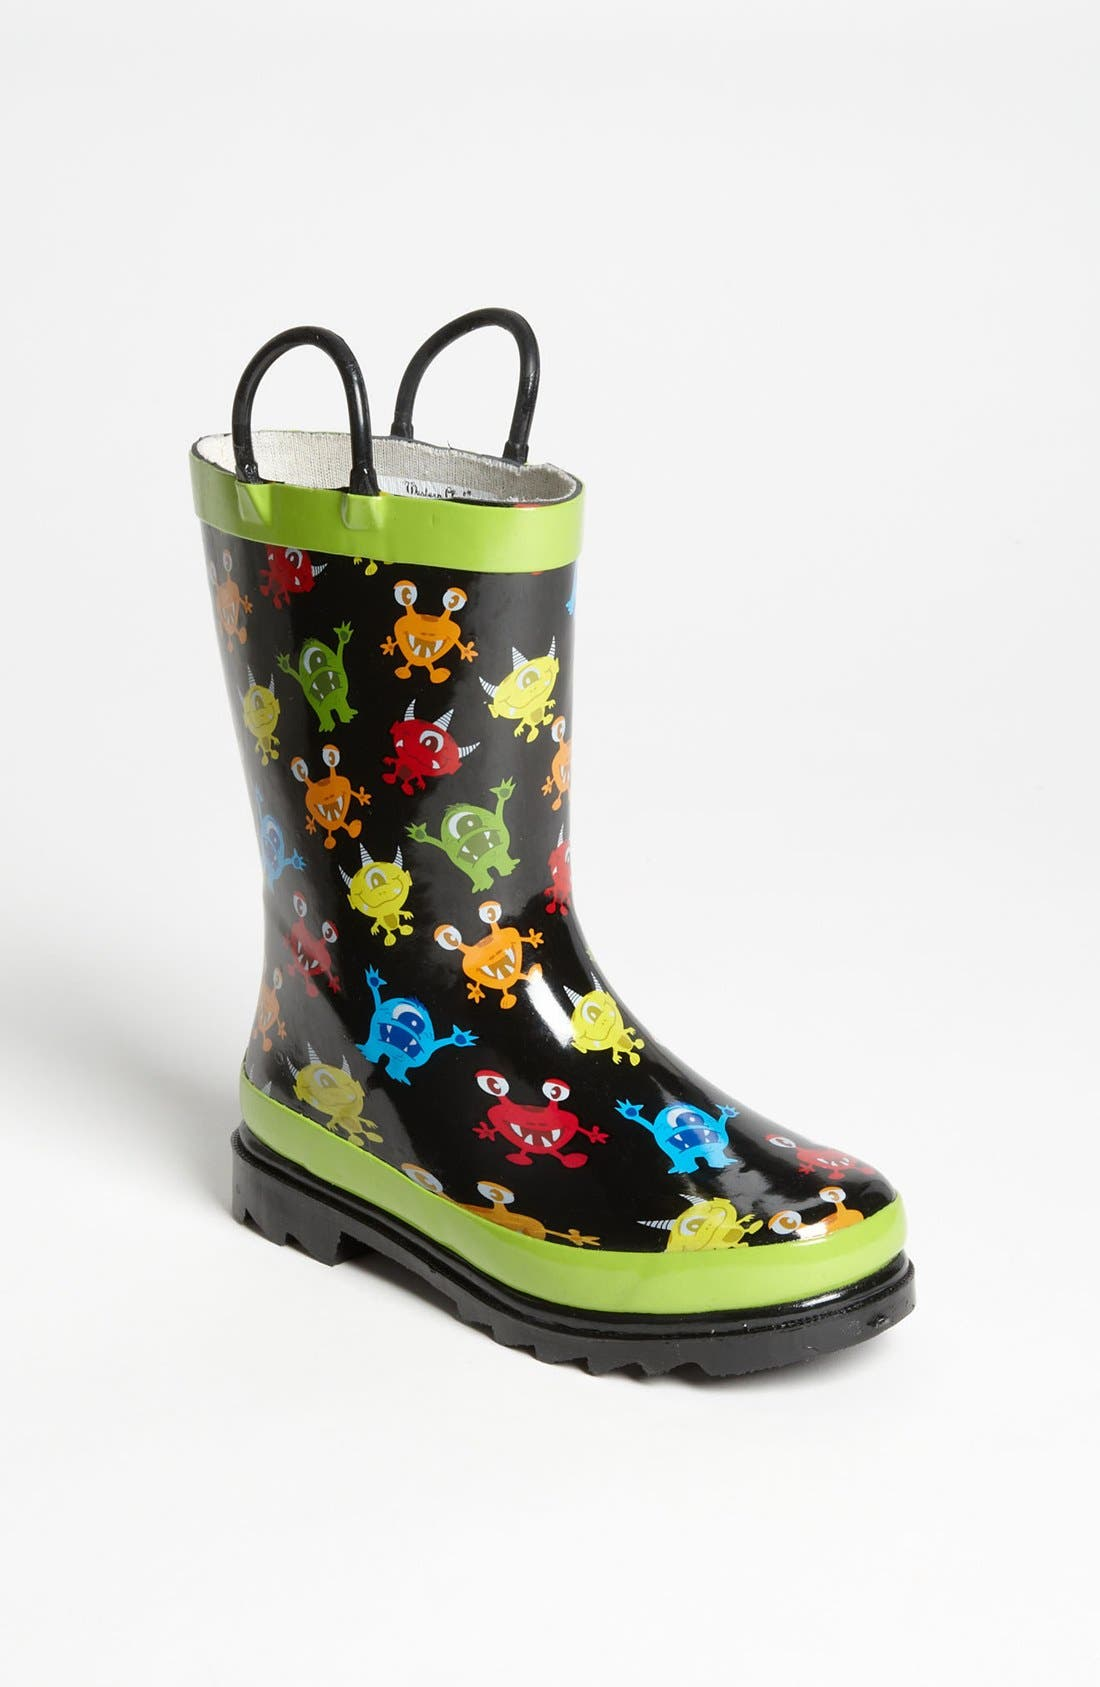 Main Image - Western Chief 'Monster Party' Rain Boot (Walker, Toddler & Little Kid)